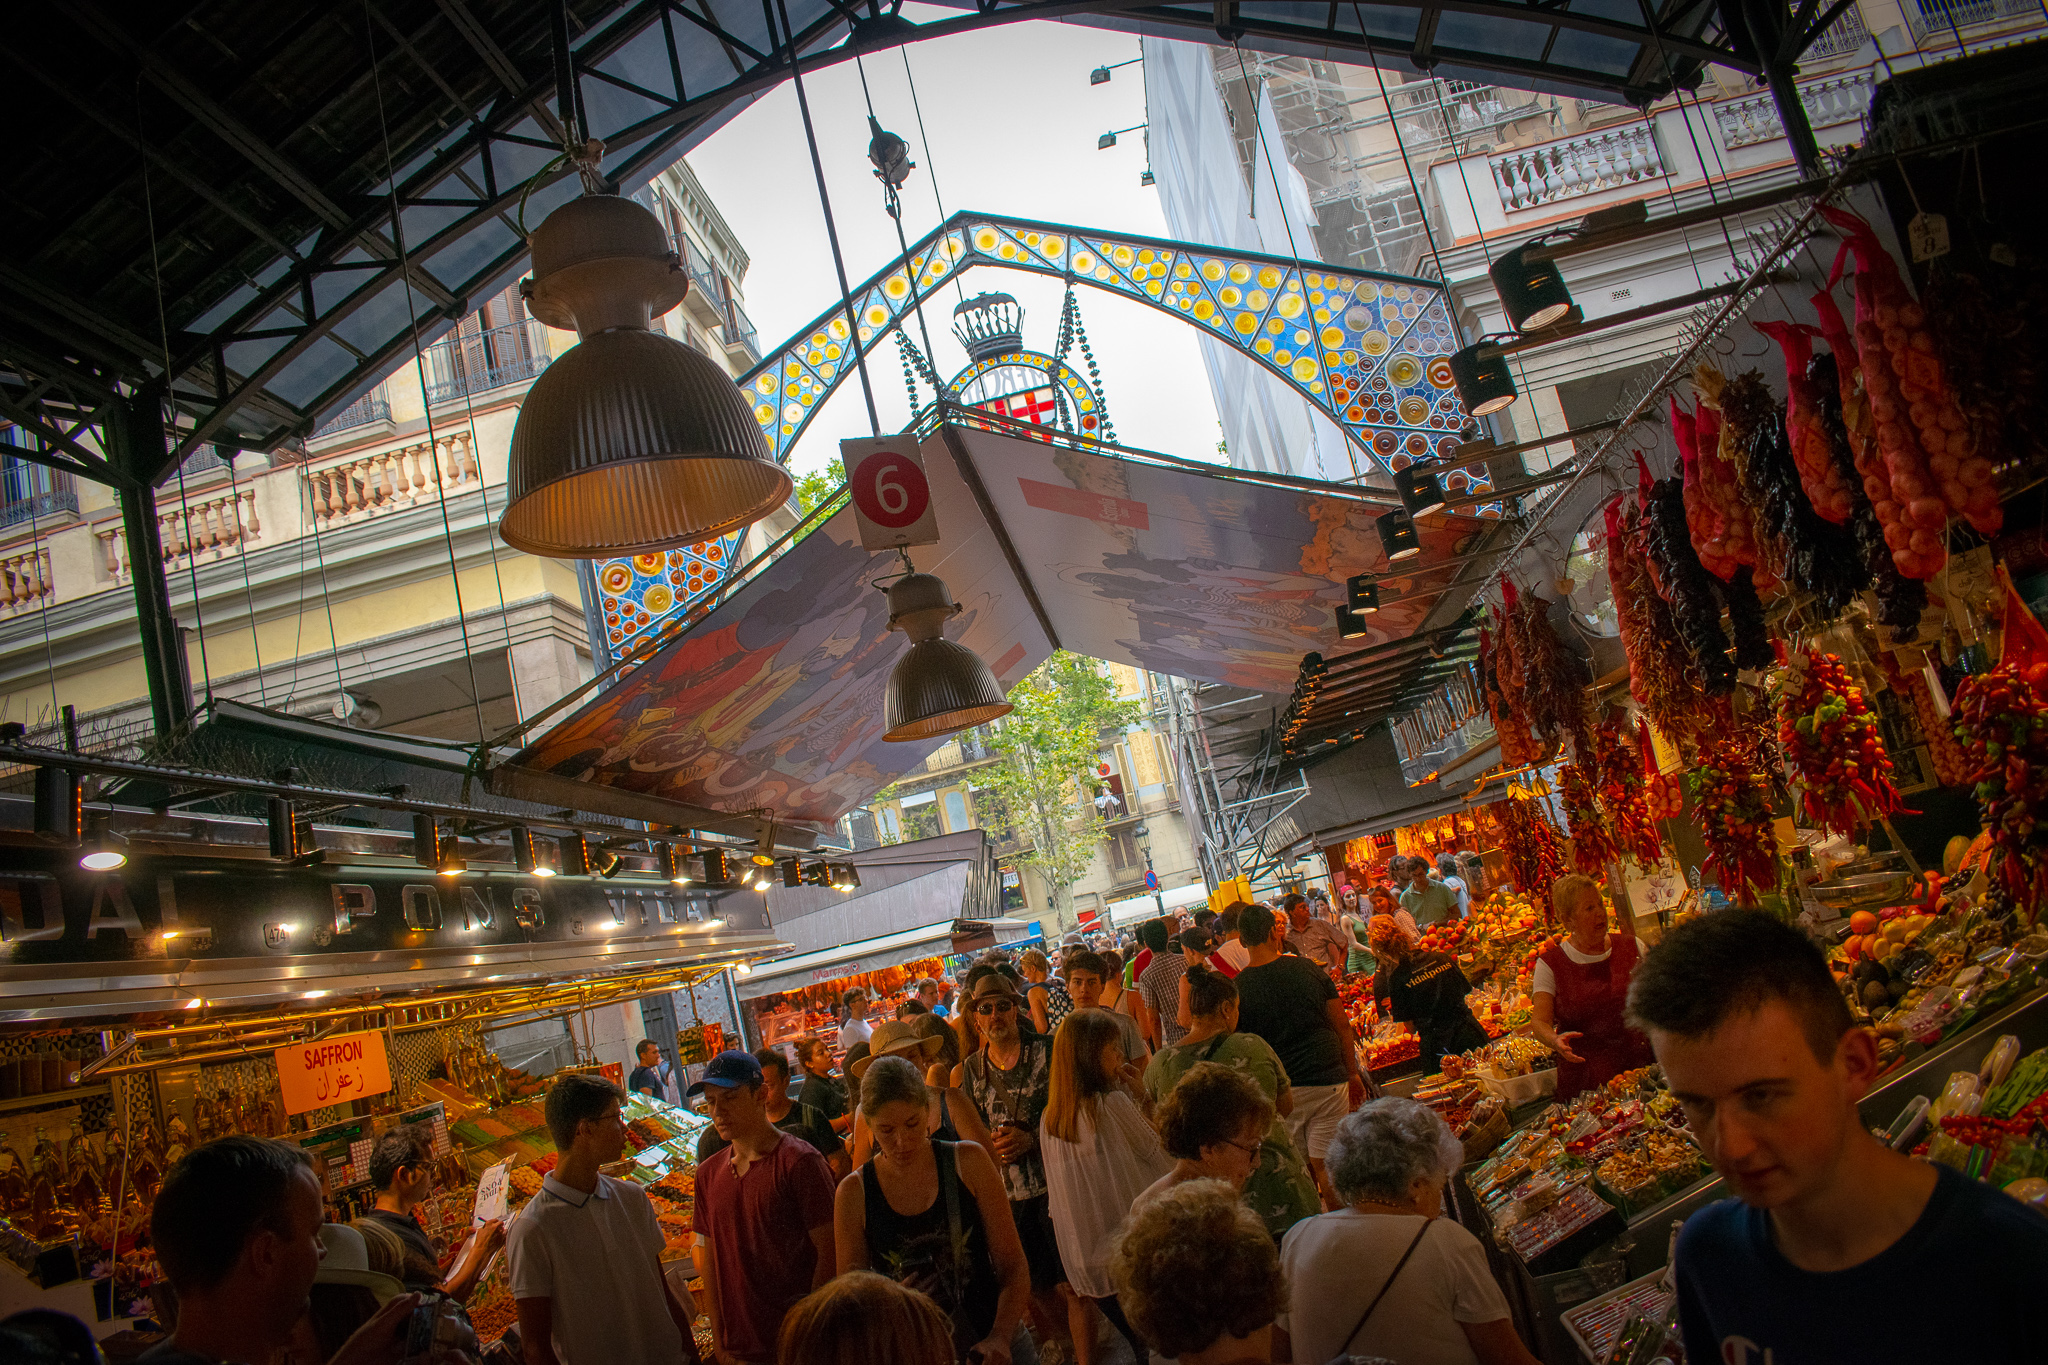 La Boqueria is the place to go for street food vibes in Barca.